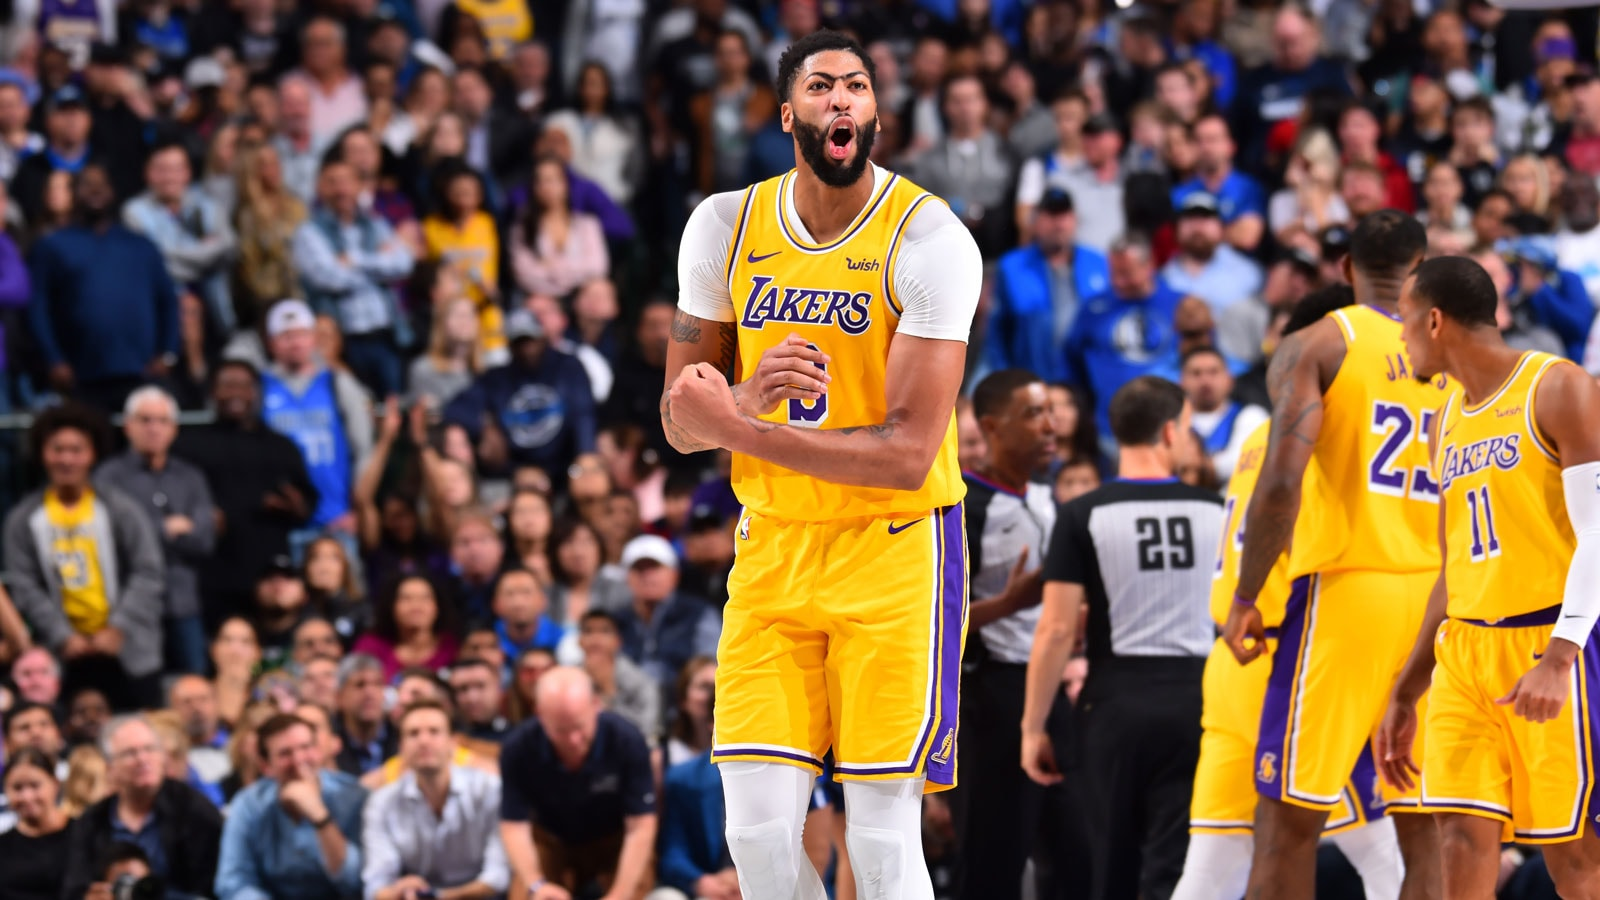 Anthony Davis #3 of the Los Angeles Lakers reacts to a play against the Dallas Mavericks on November 1, 2019 at the American Airlines Center in Dallas, Texas.